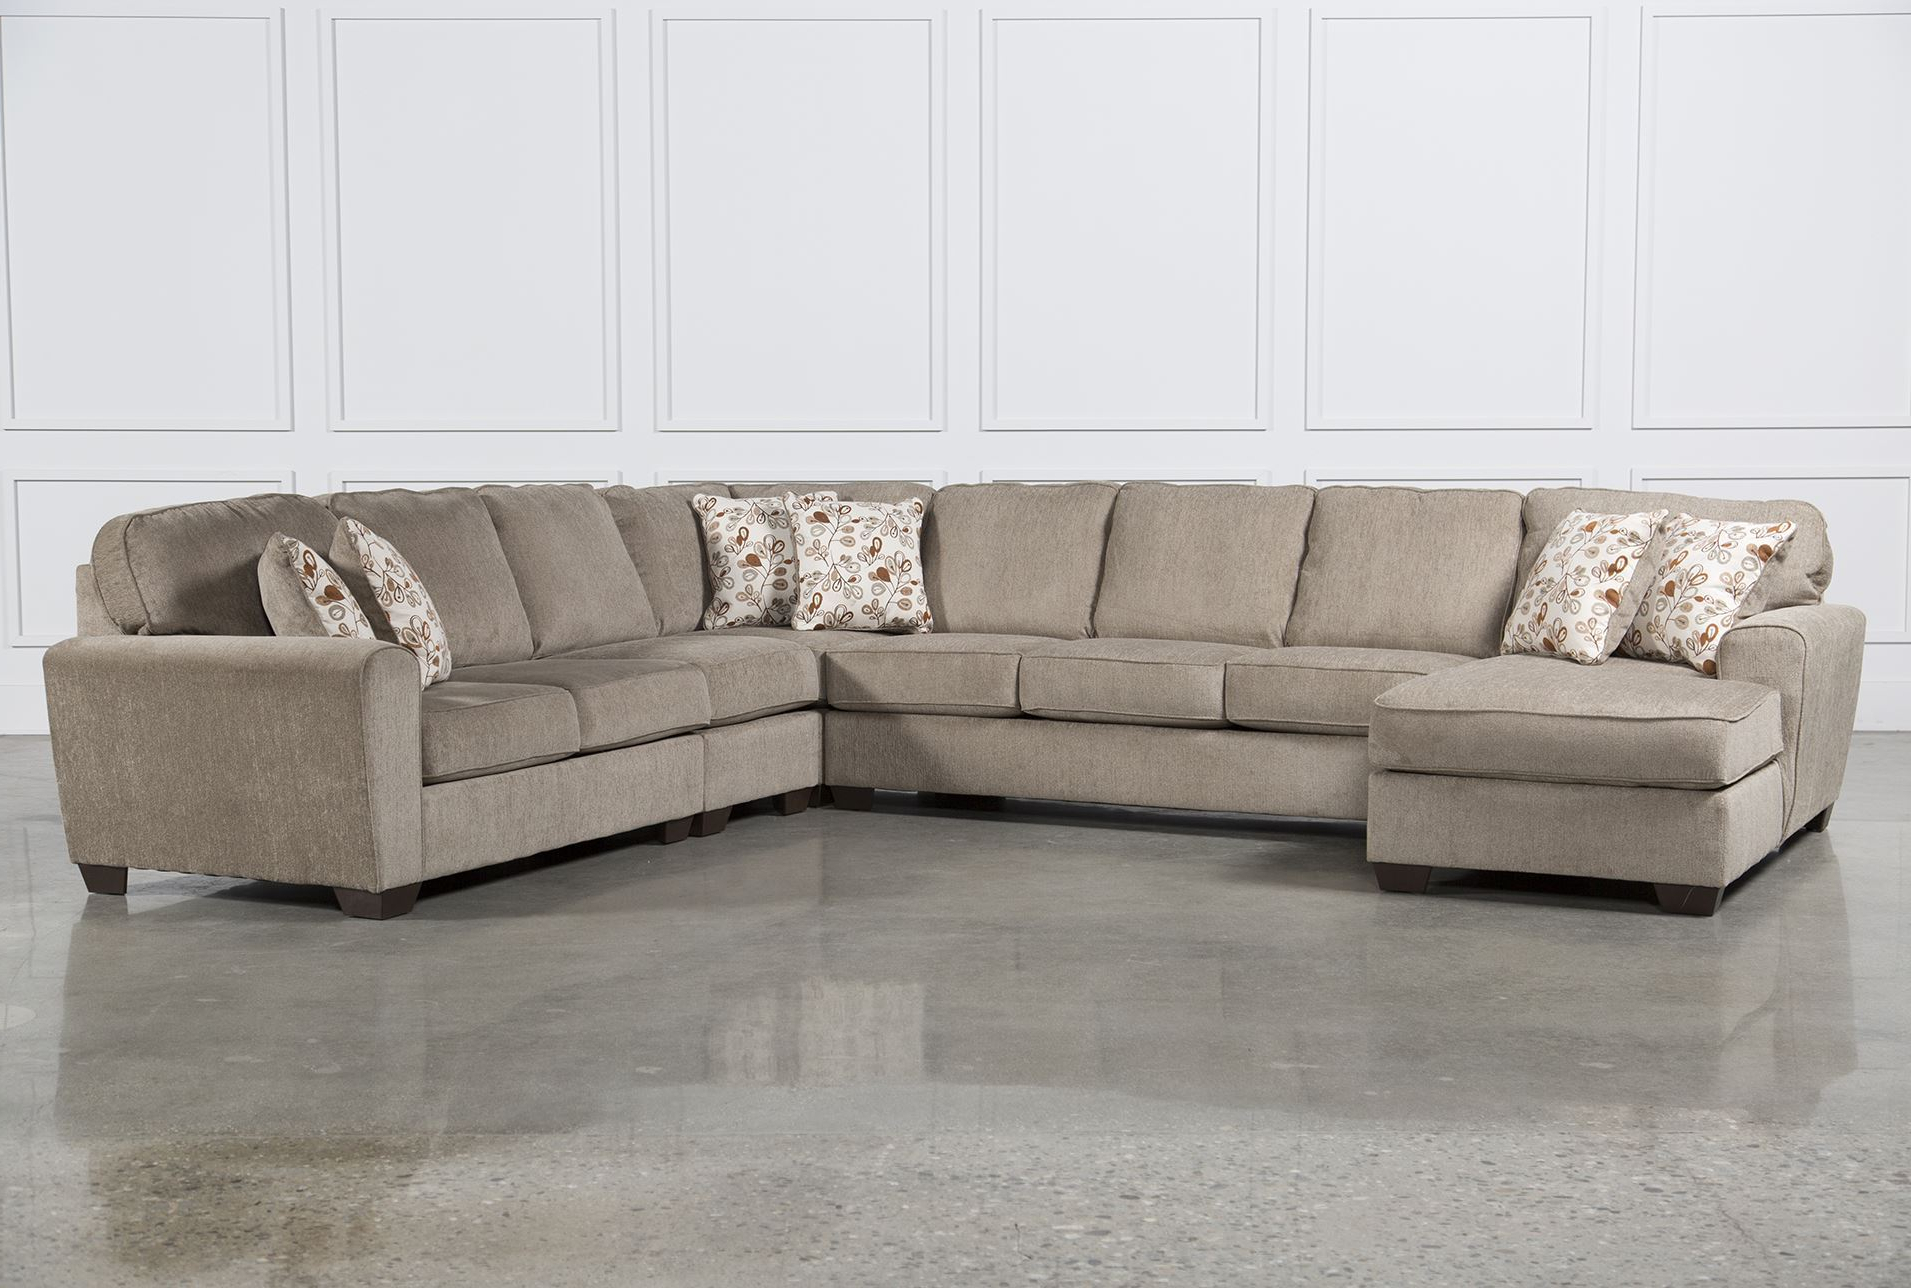 Best Ideas Of Laf Chaise On Gordon 3 Piece Sectional W Laf Chaise Pertaining To Most Up To Date Gordon 3 Piece Sectionals With Raf Chaise (Gallery 13 of 20)